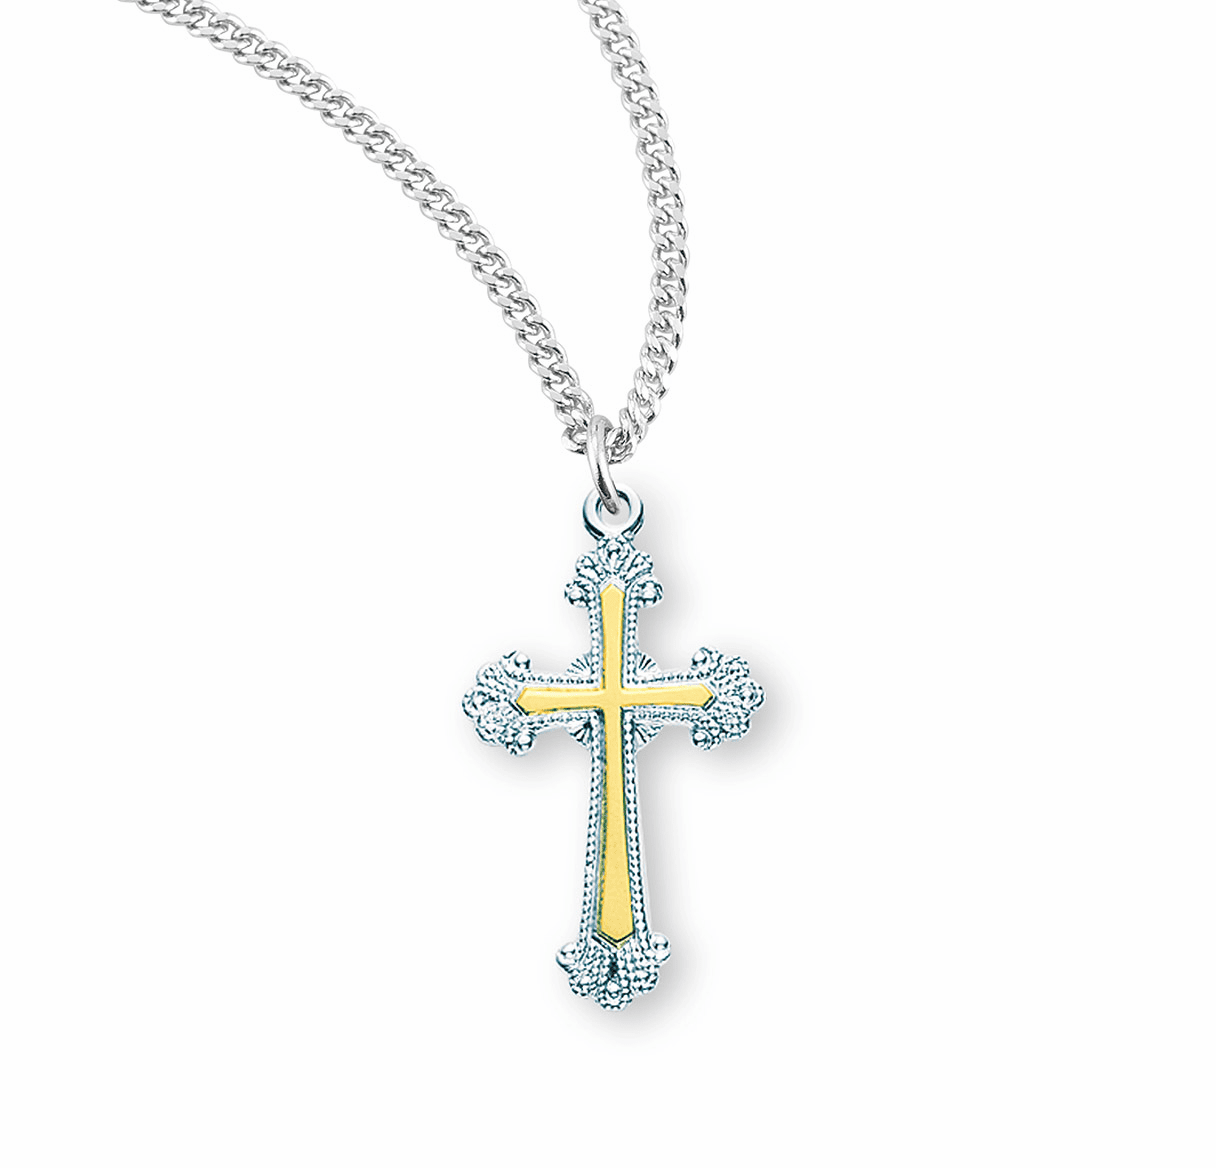 HMH Religious TuTone Sterling Silver Cross w/Fancy Ends Necklace